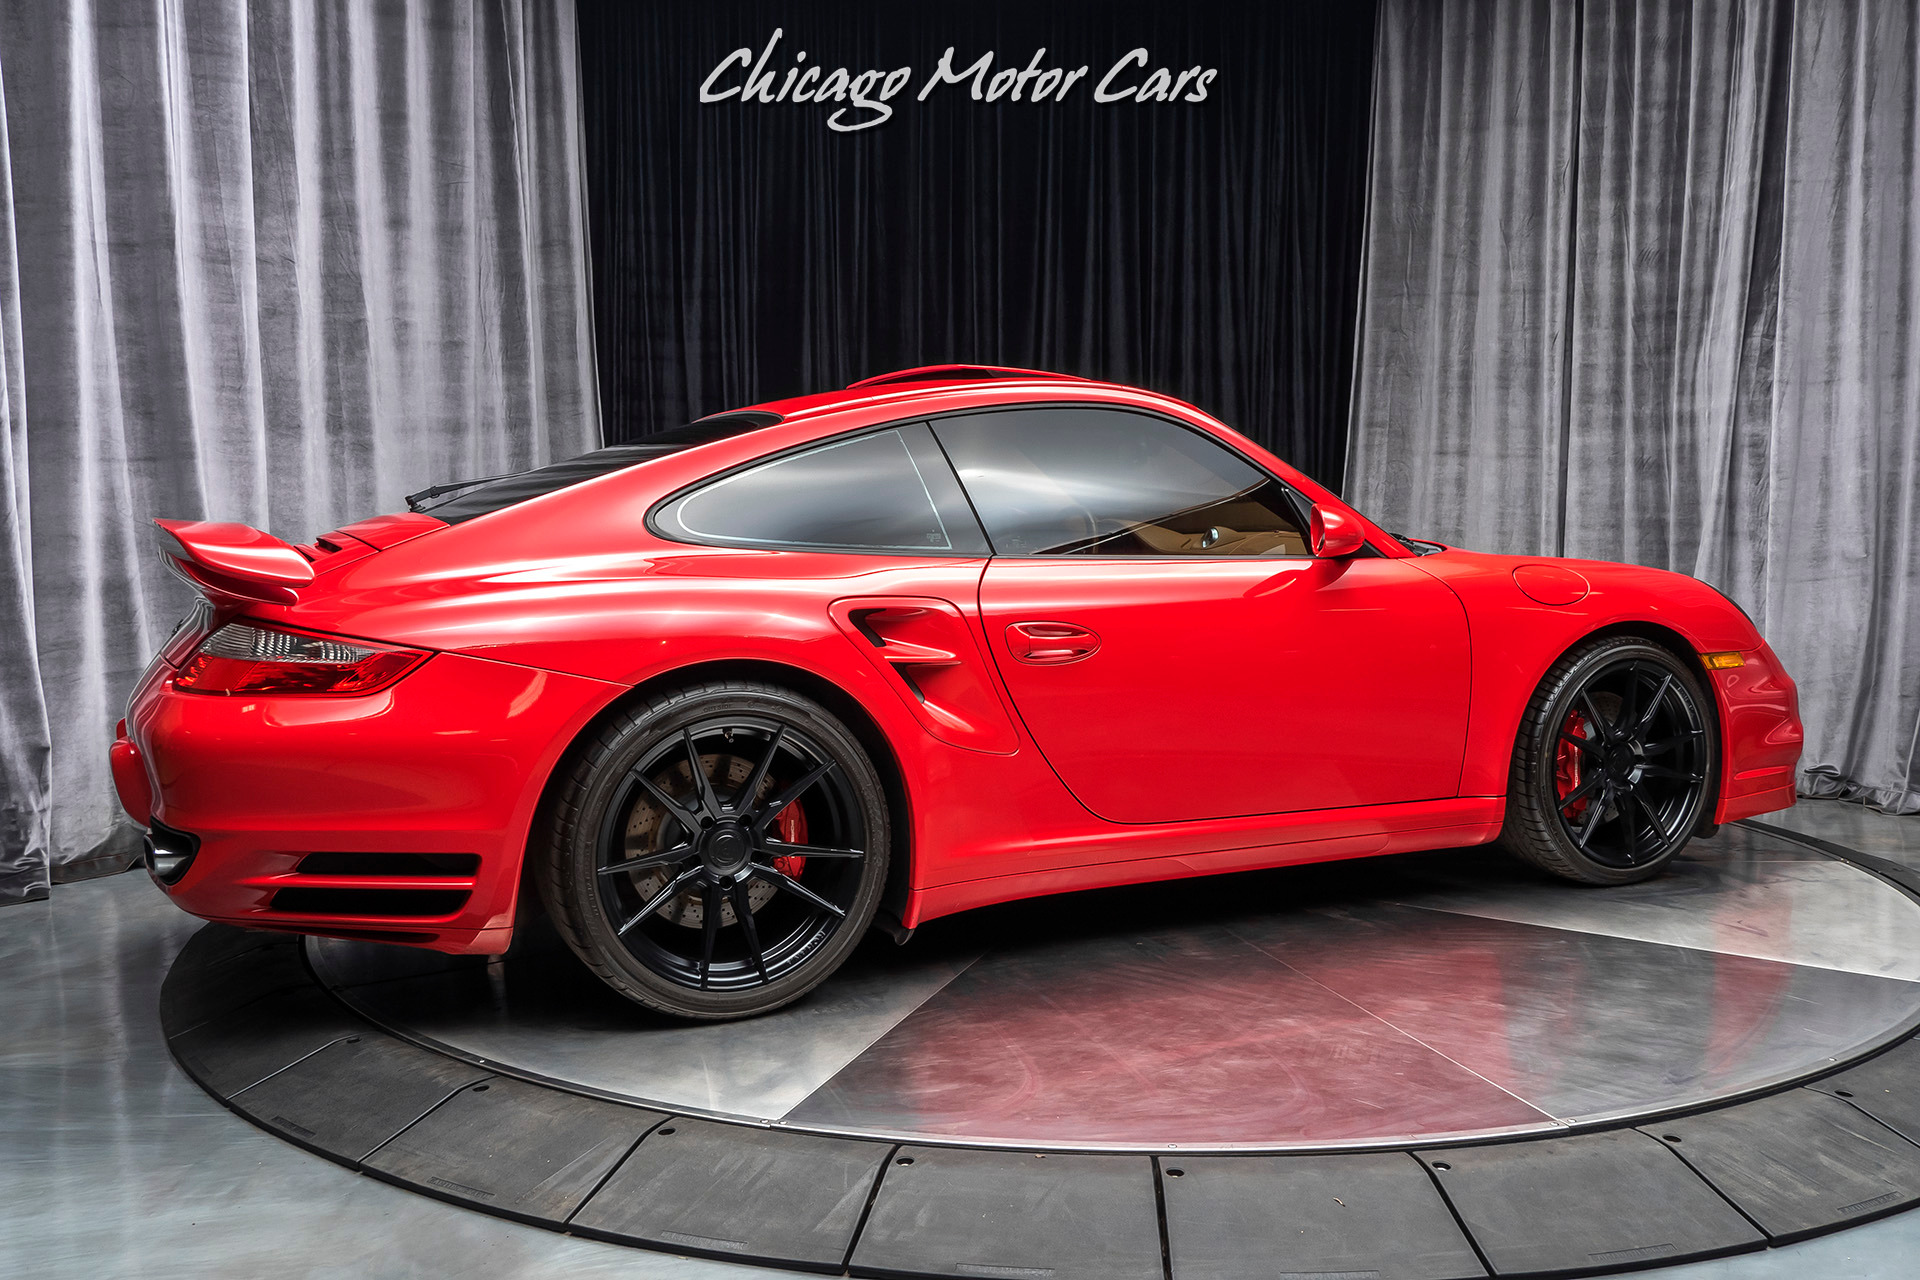 Used 2008 Porsche 911 Turbo Coupe Msrp 141k For Sale